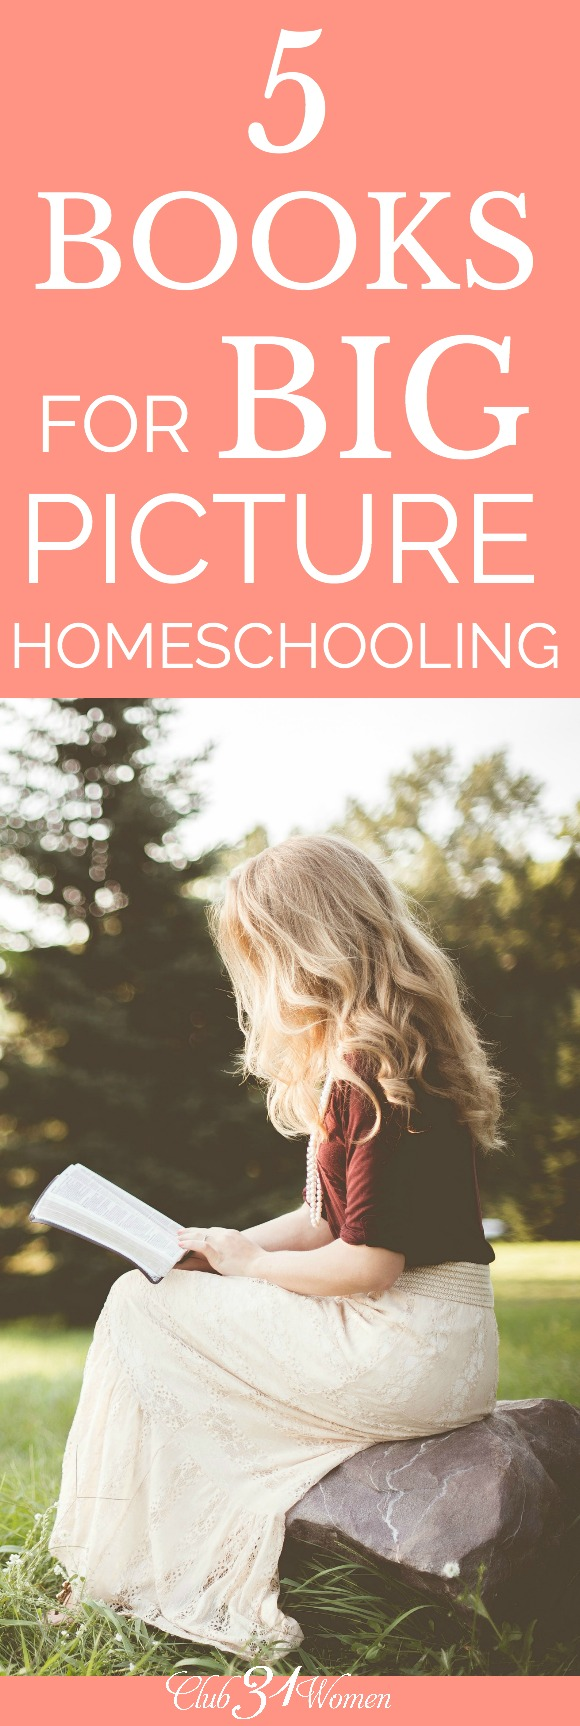 How can you keep the big picture in mind while you're homeschooling? Here are some excellent guide and reference books to get you started! via @Club31Women